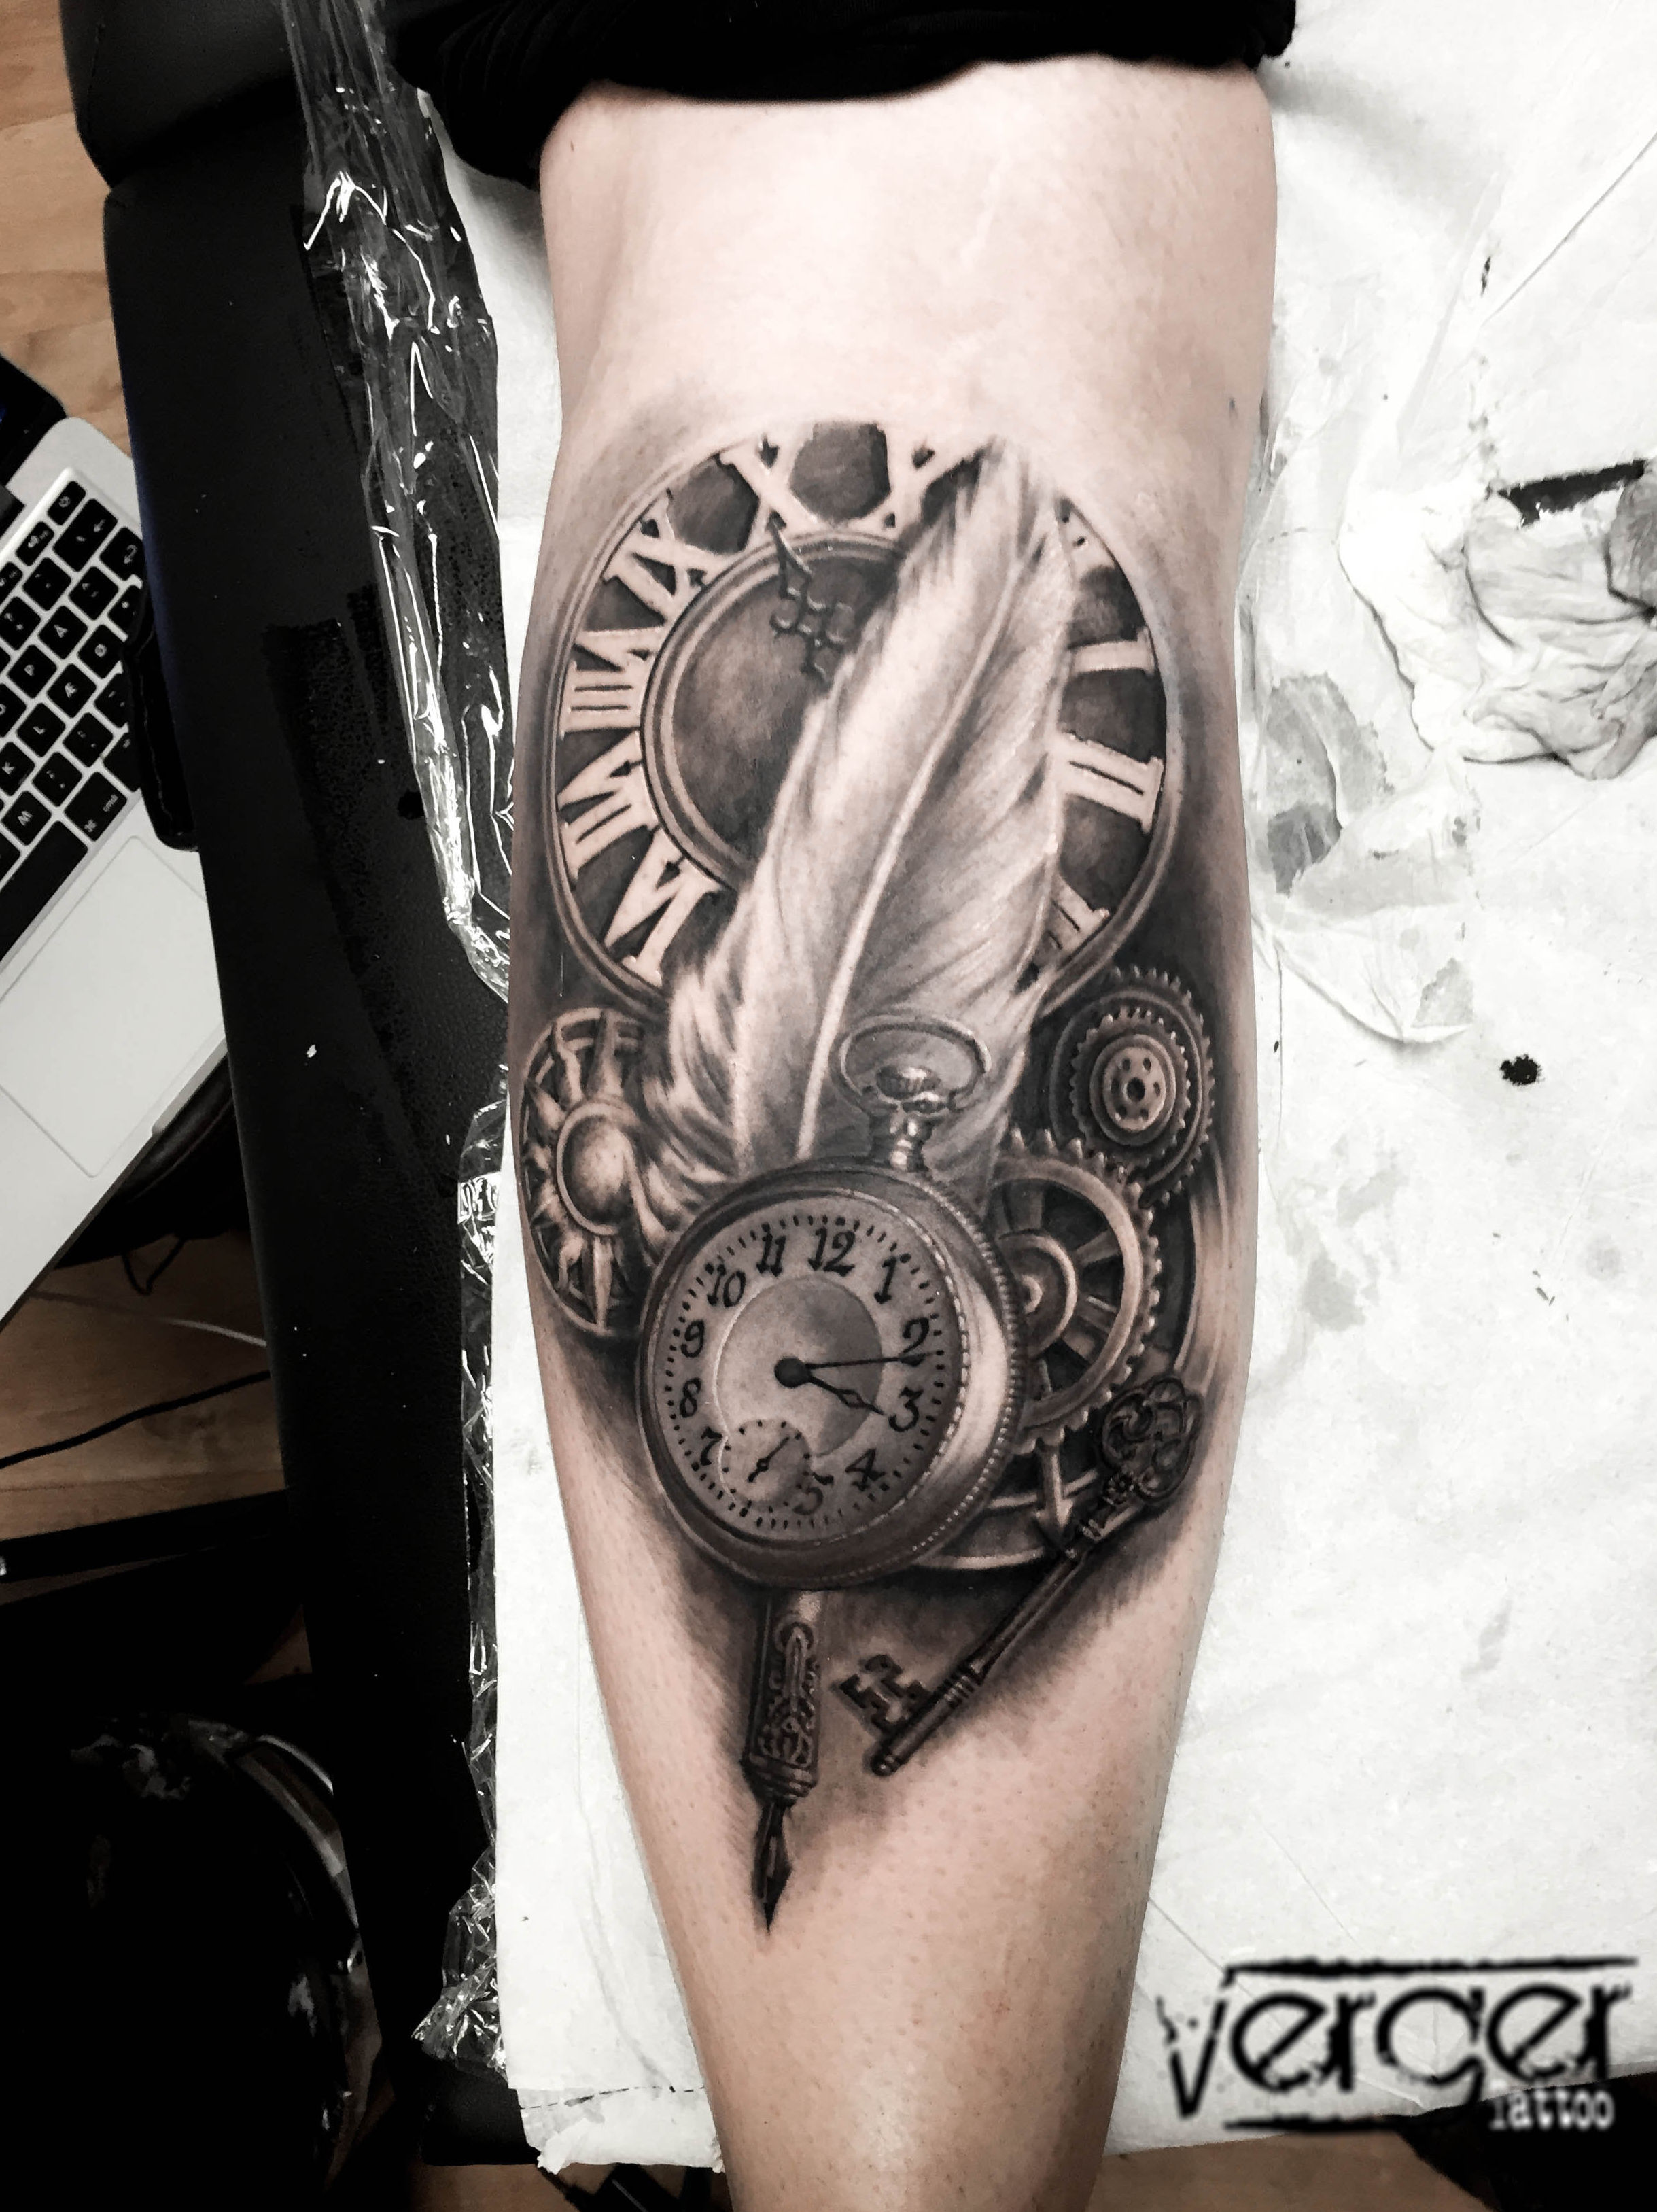 Reloj Tattoo Realista. Santander. Verger Tattoo. JR Verger